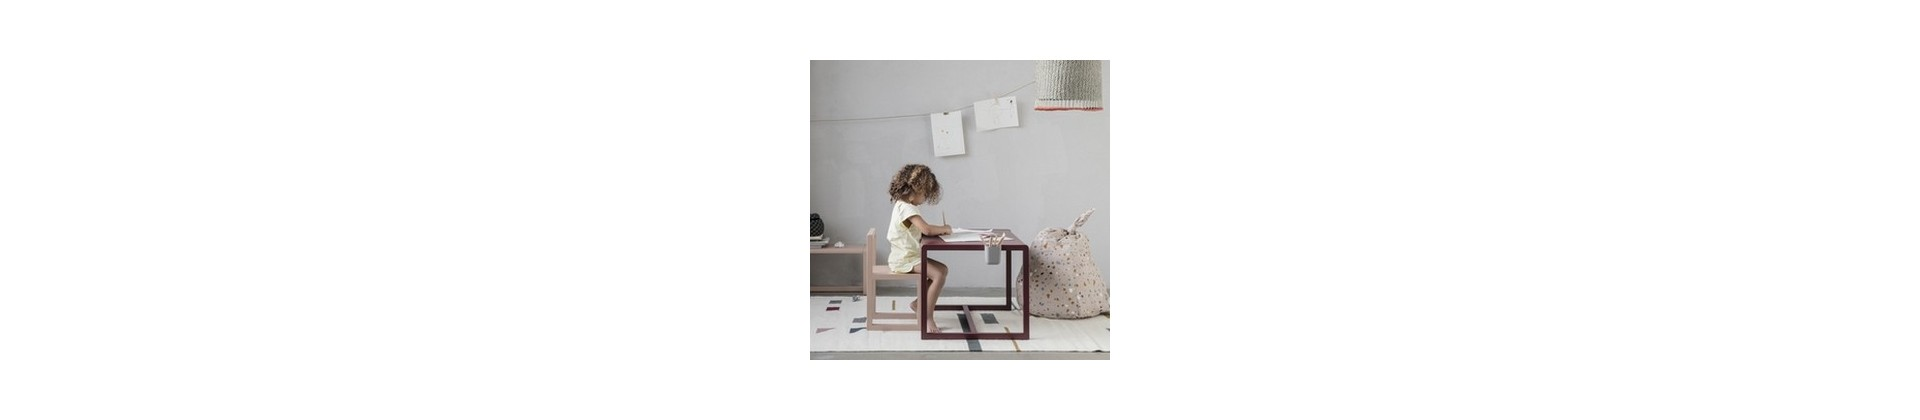 Kids desk and table